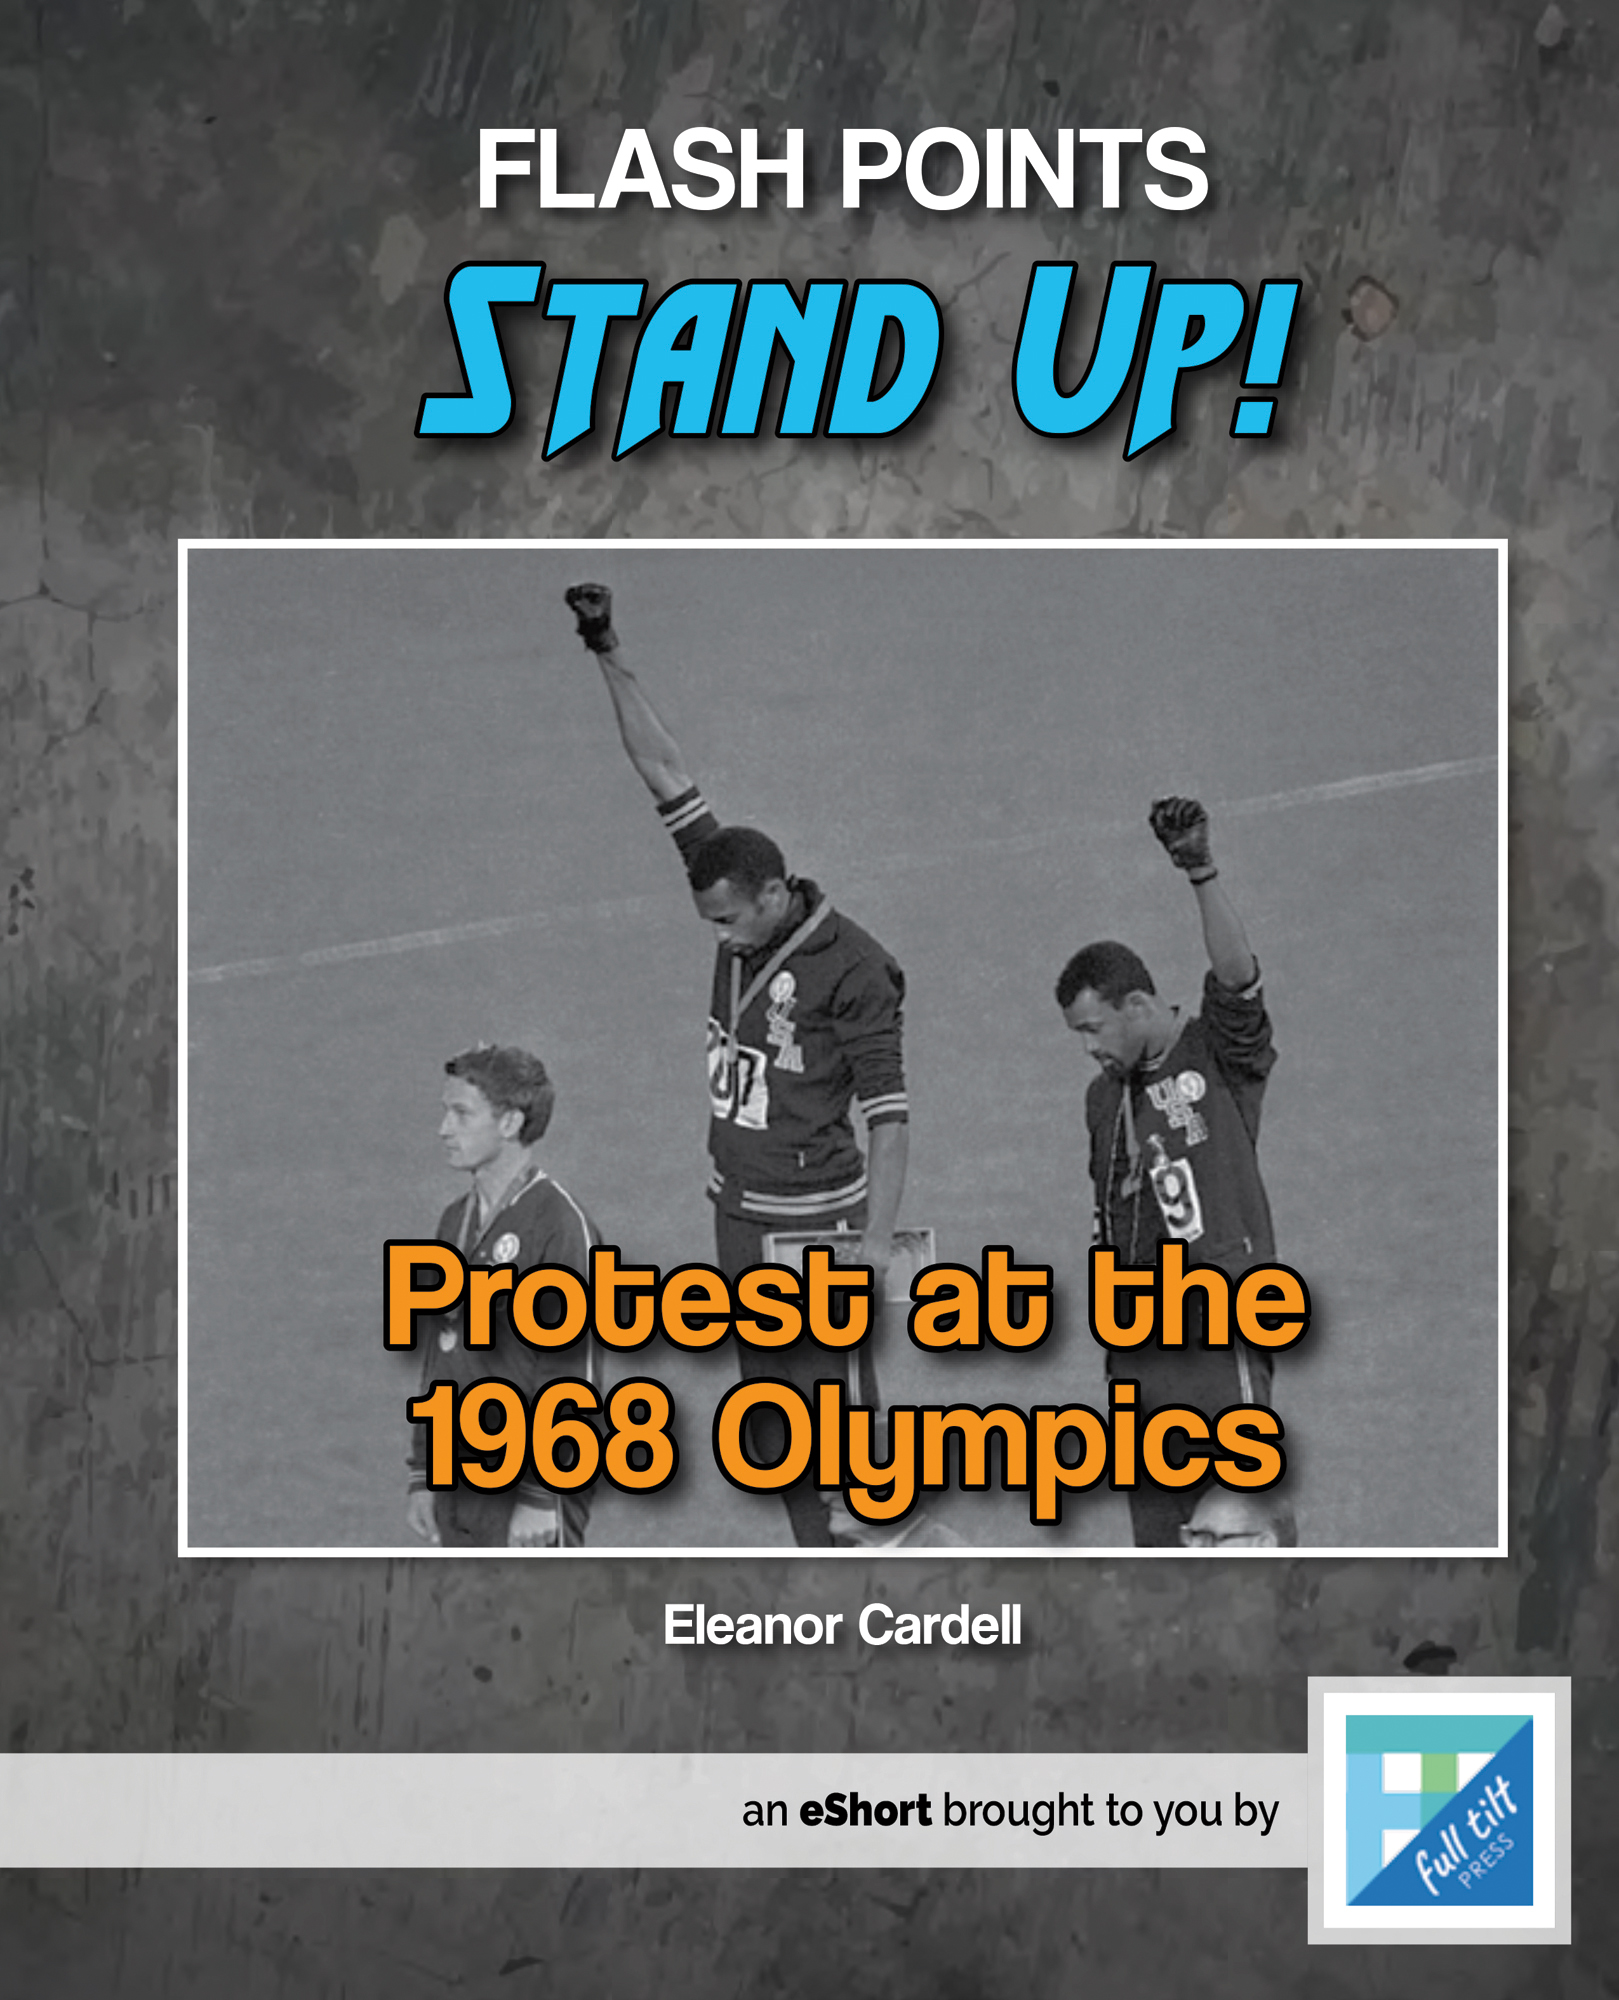 Protest at the 1968 Olympics